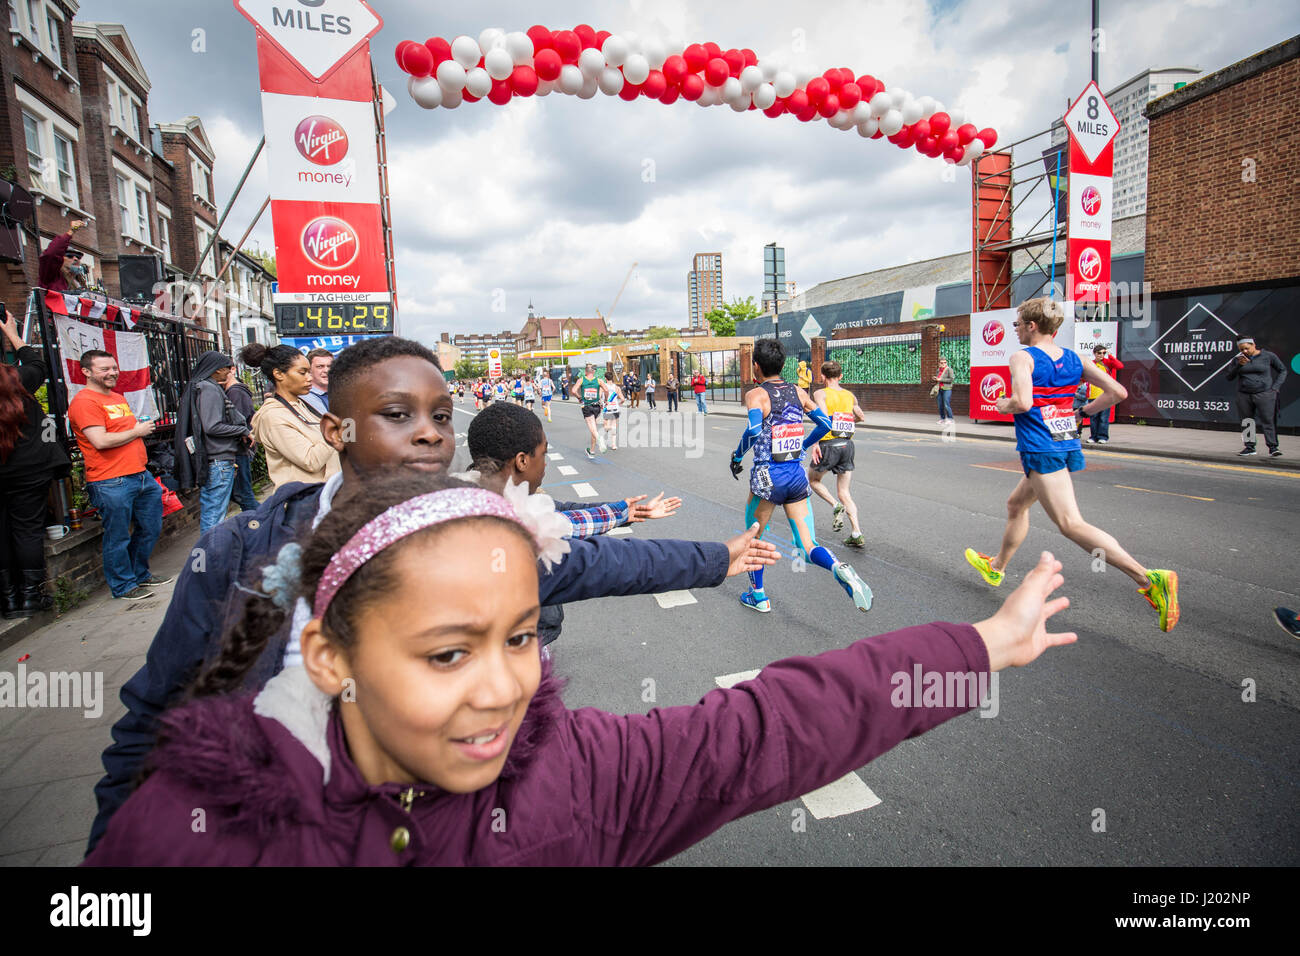 London, UK. 23rd Apr, 2017. Thousands of runners during the 37th London Marathon pass through Deptford in south Stock Photo